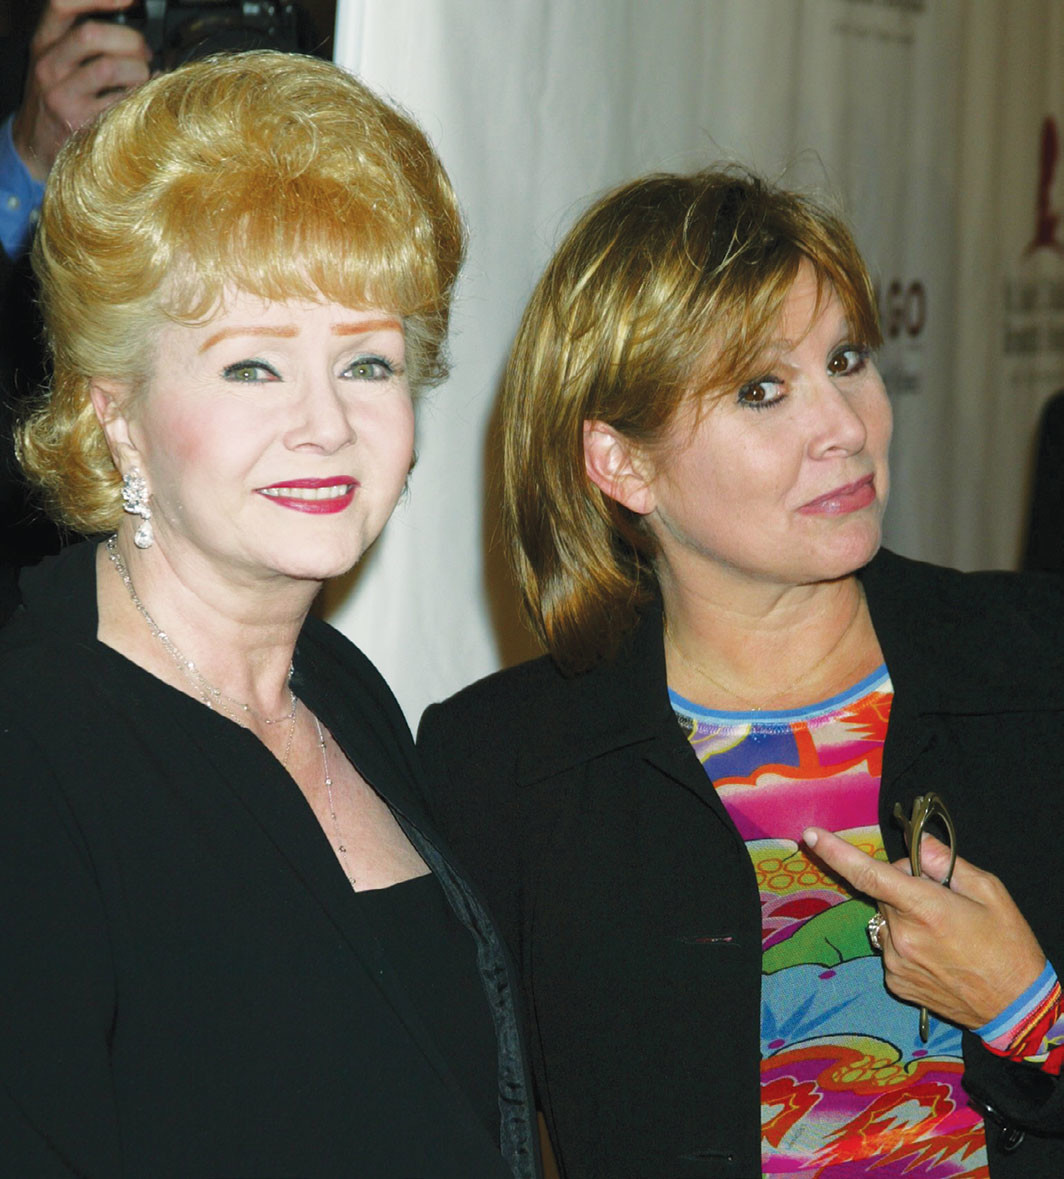 Debbie Reynolds and Carrie Fisher, August 19, 2003. Jim Smeal/BEI/Shutterstock